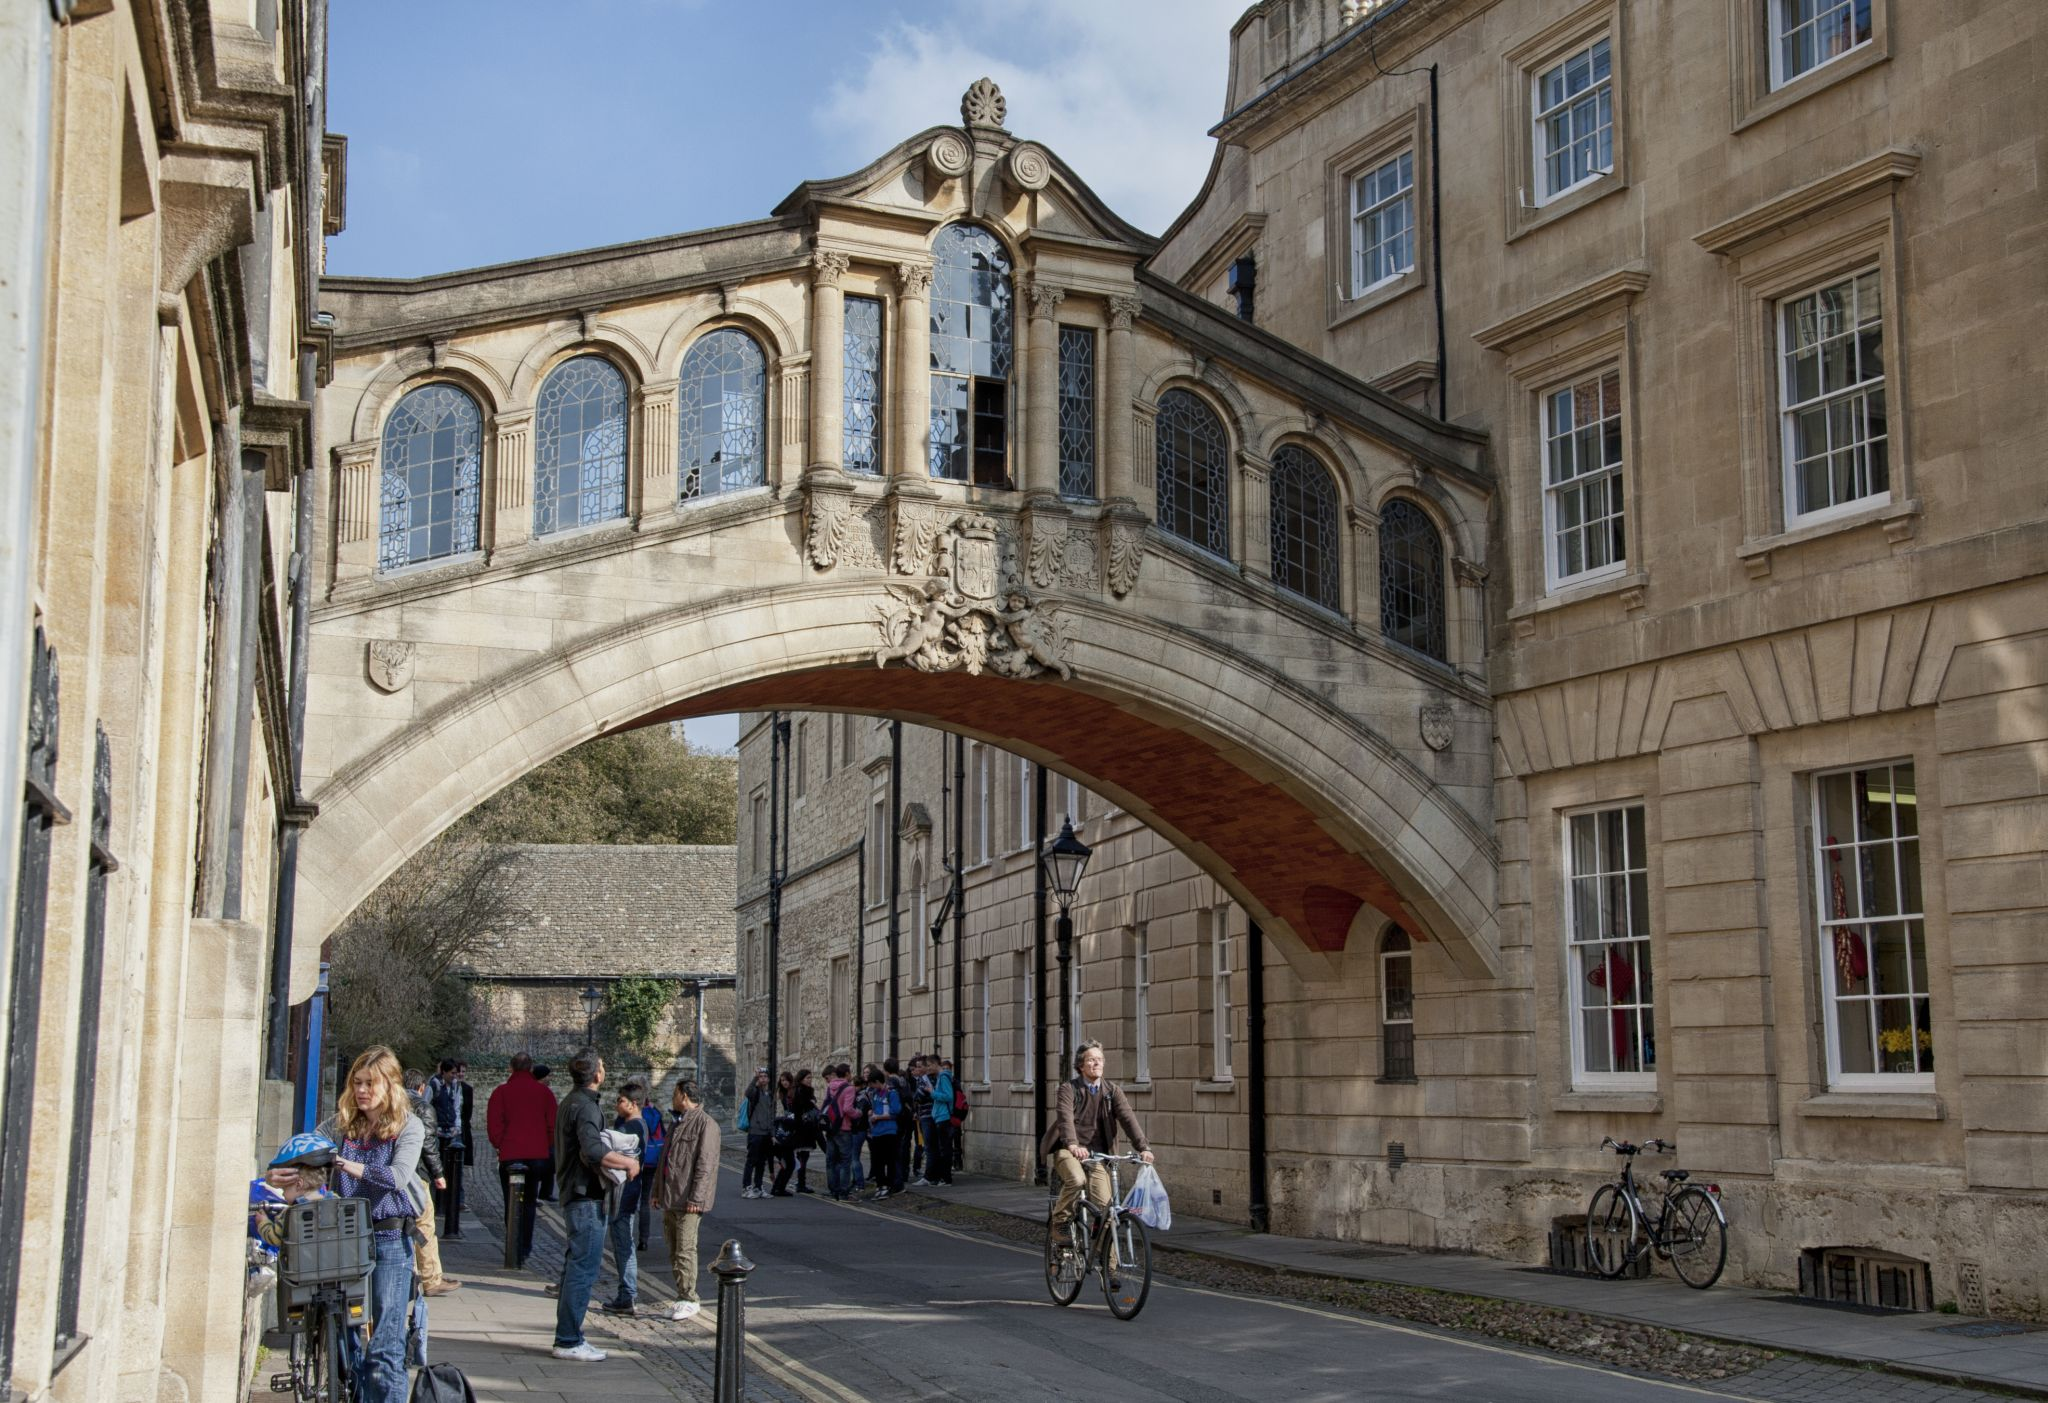 Packing for the weekend - Bridge of Sighs Oxford